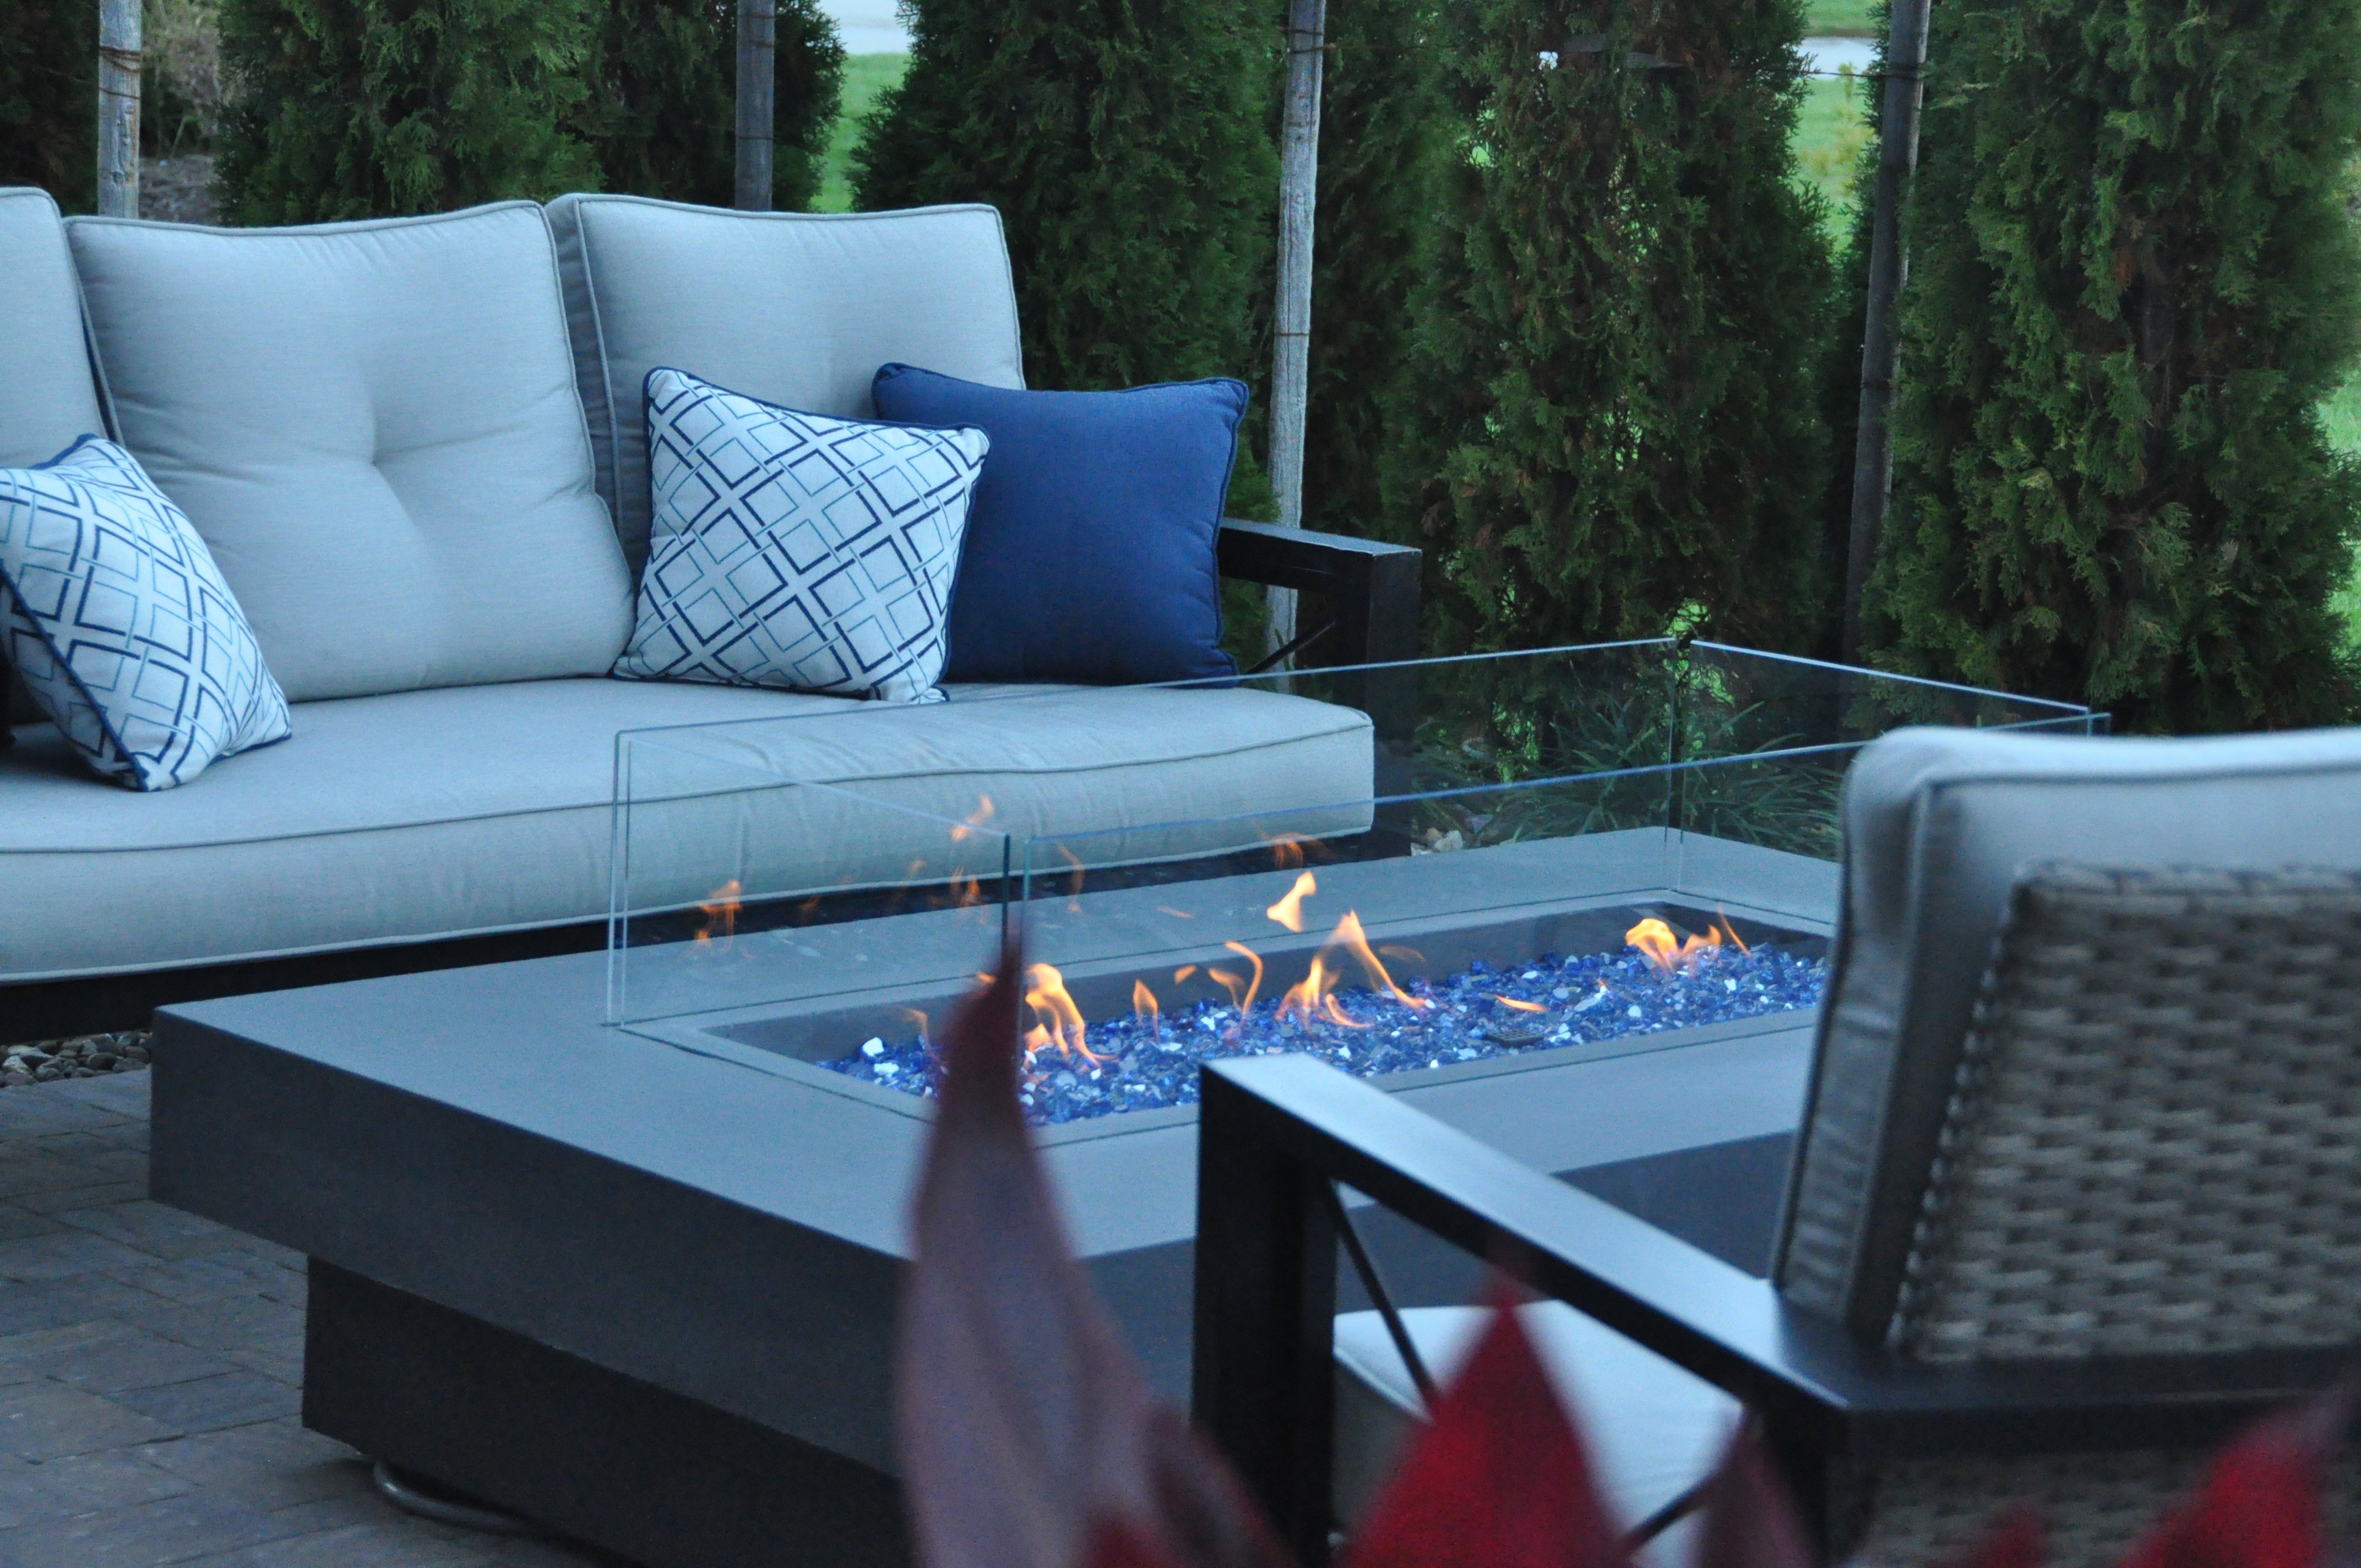 Using glass pebbles gives a sleek, modern feel to the fire pit.